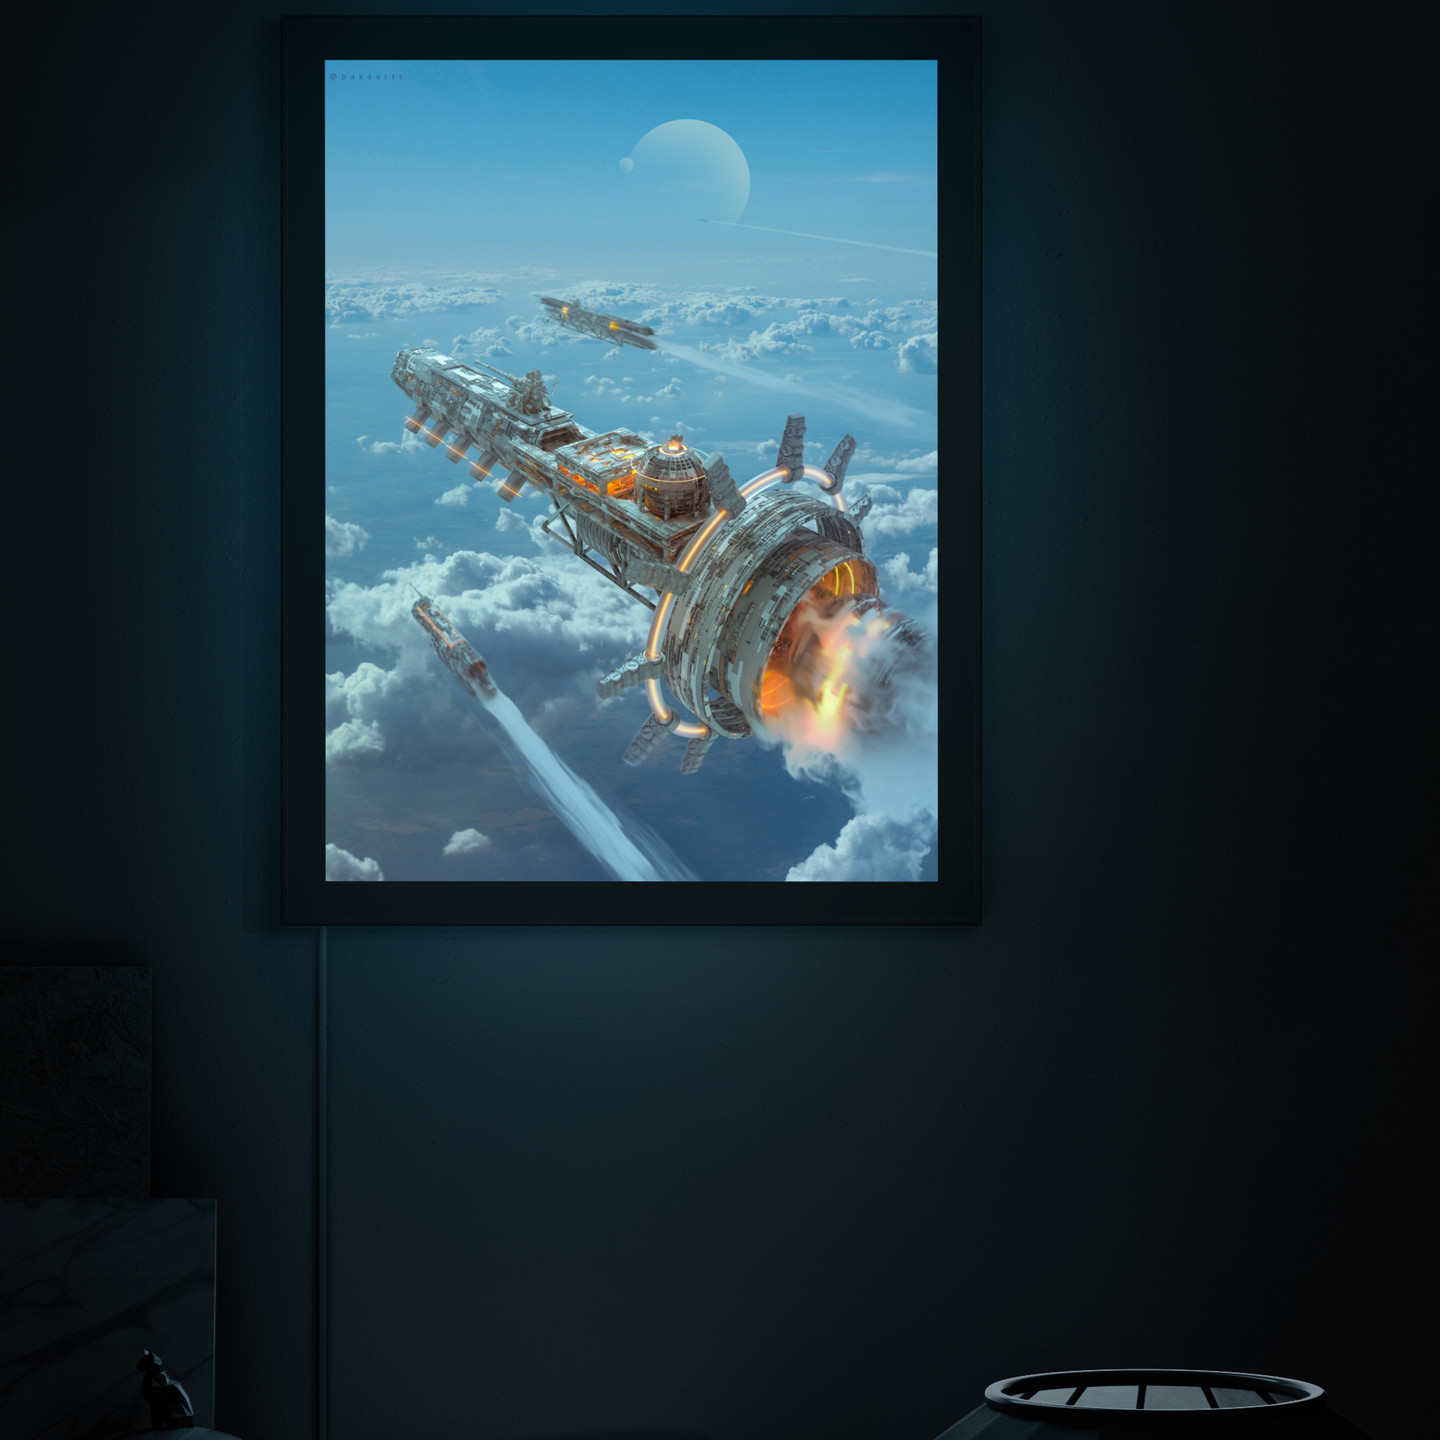 Atmos by Darius Baka showing a starship in a back-lit frame